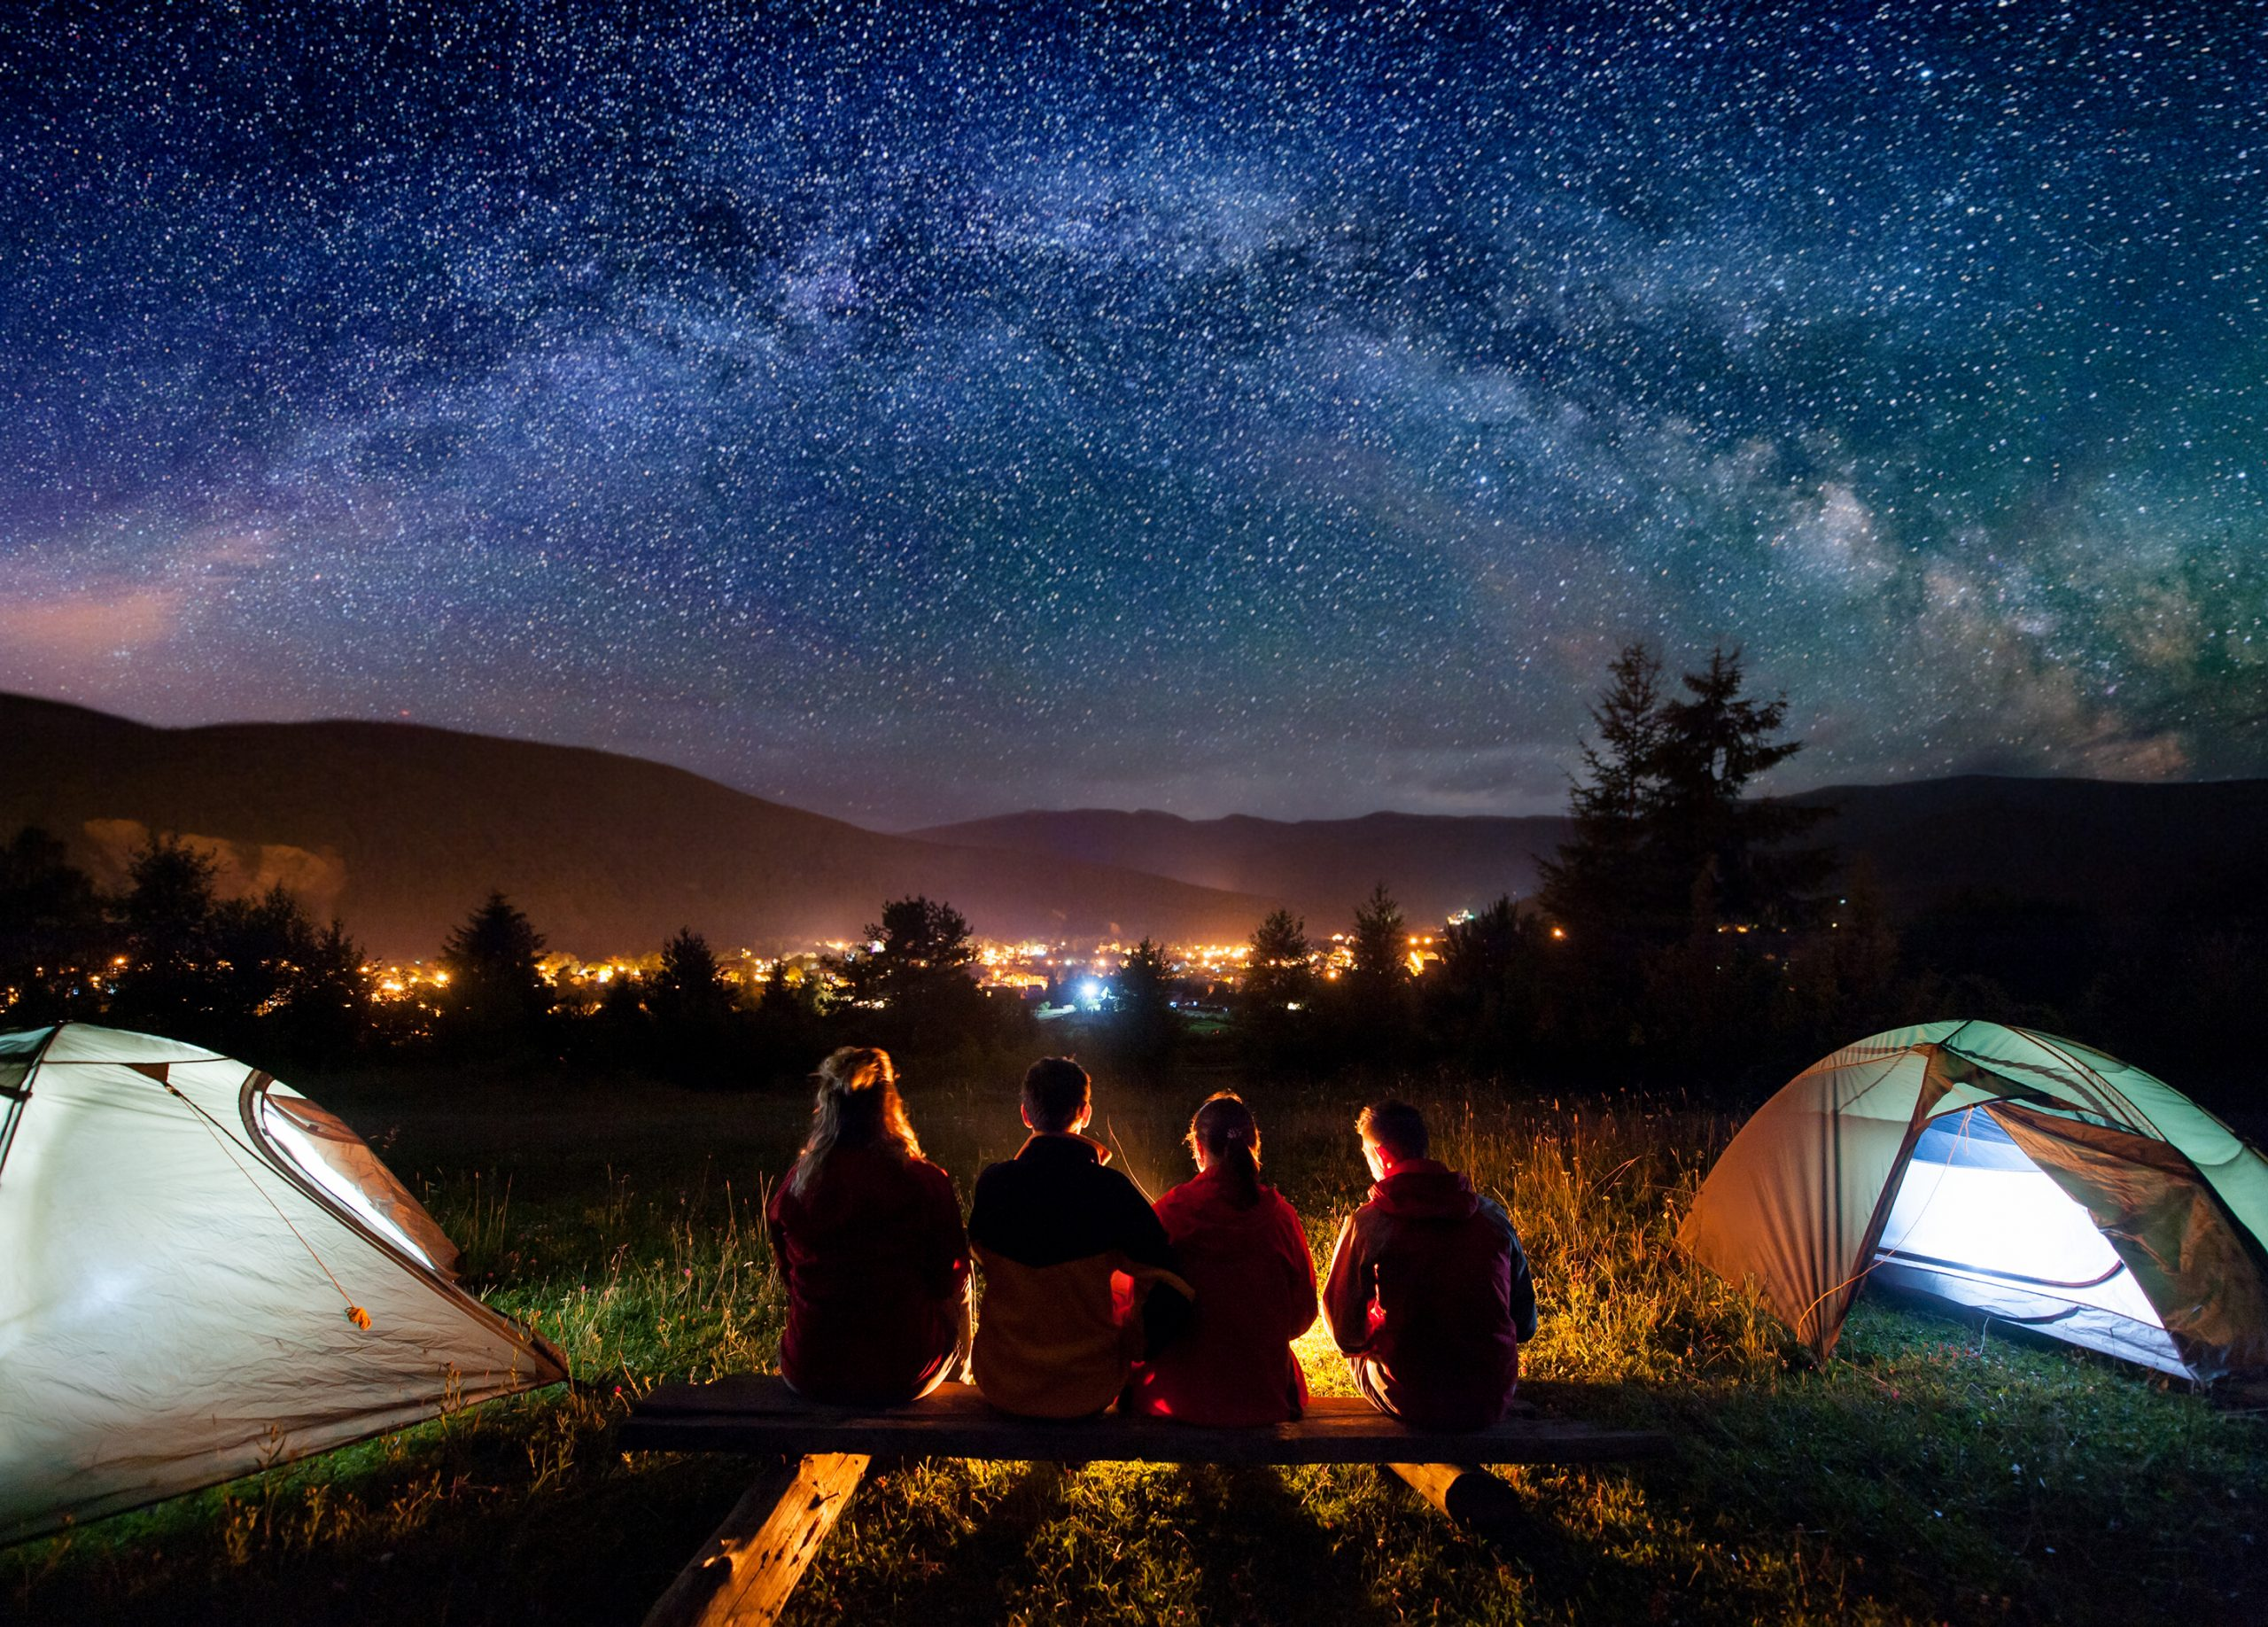 If you're headed to the outdoors, you will want to know these amazing camping hacks! We even have camping hacks for sleeping so you feel rested the next day.